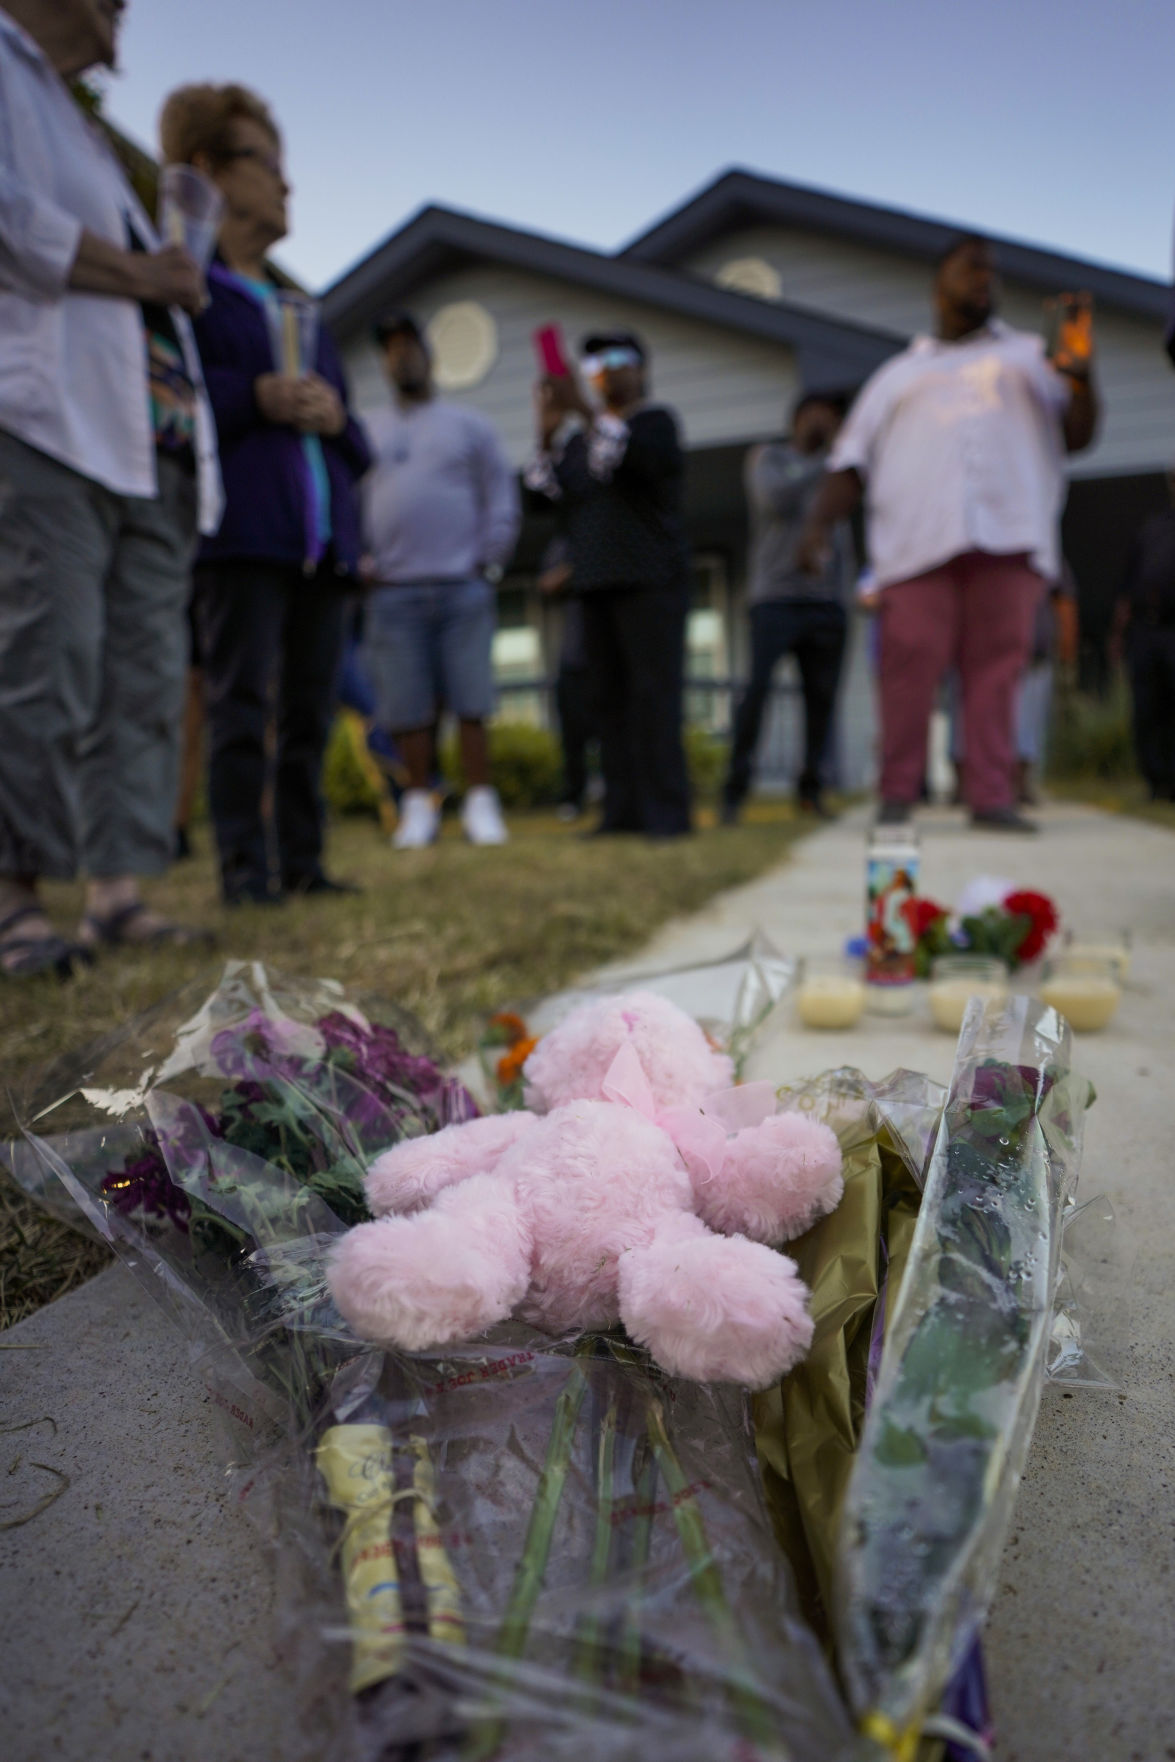 Police Shooting in Home Texas